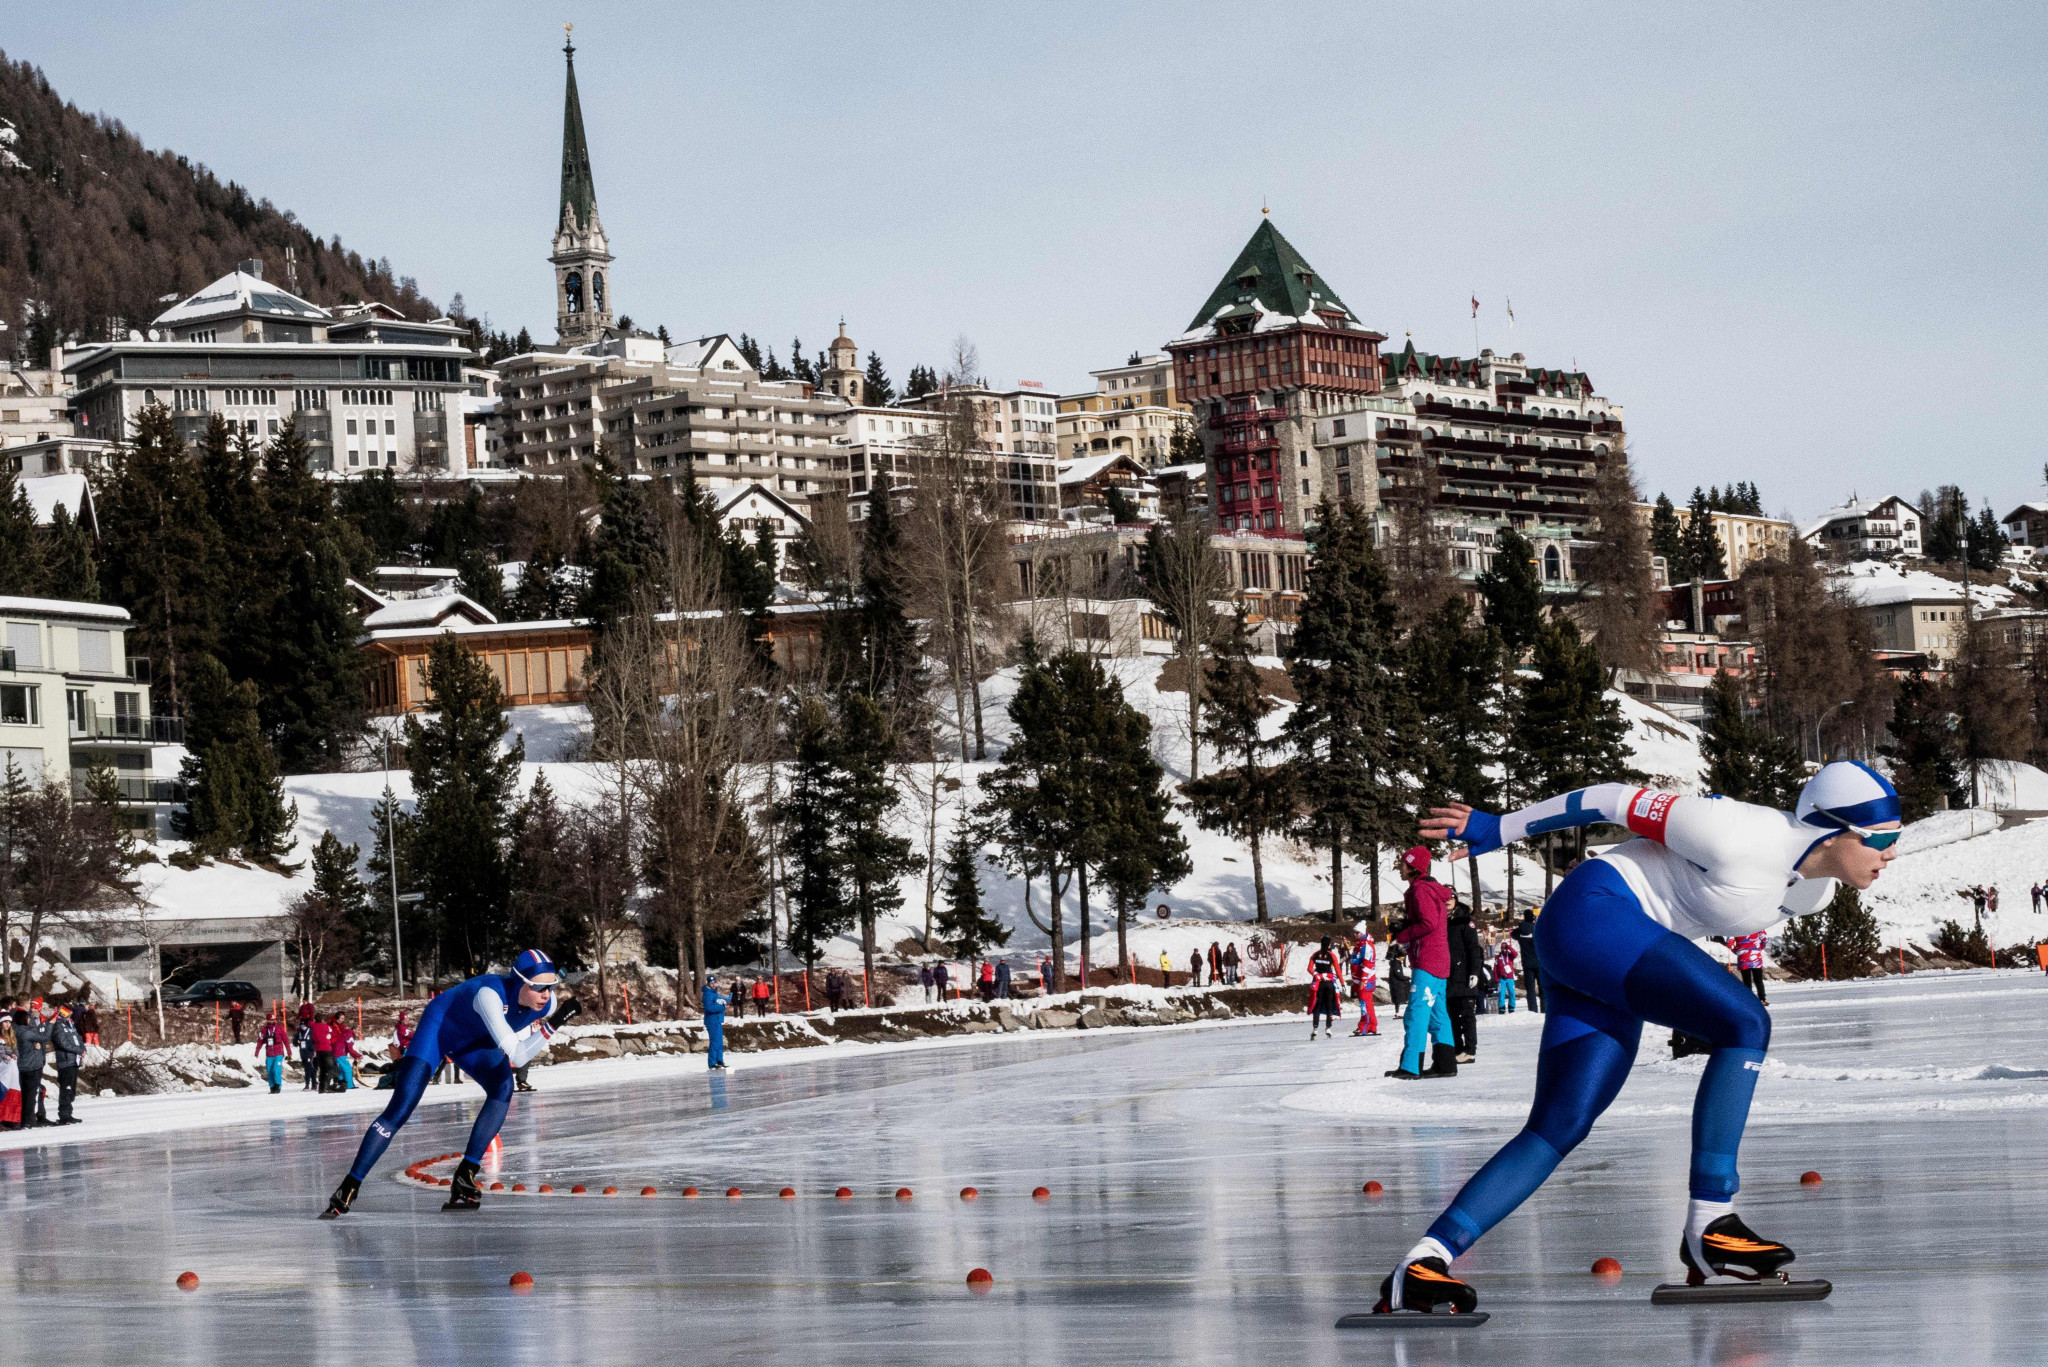 Men's and women's 1500m speed skating titles were earned ©Getty Images